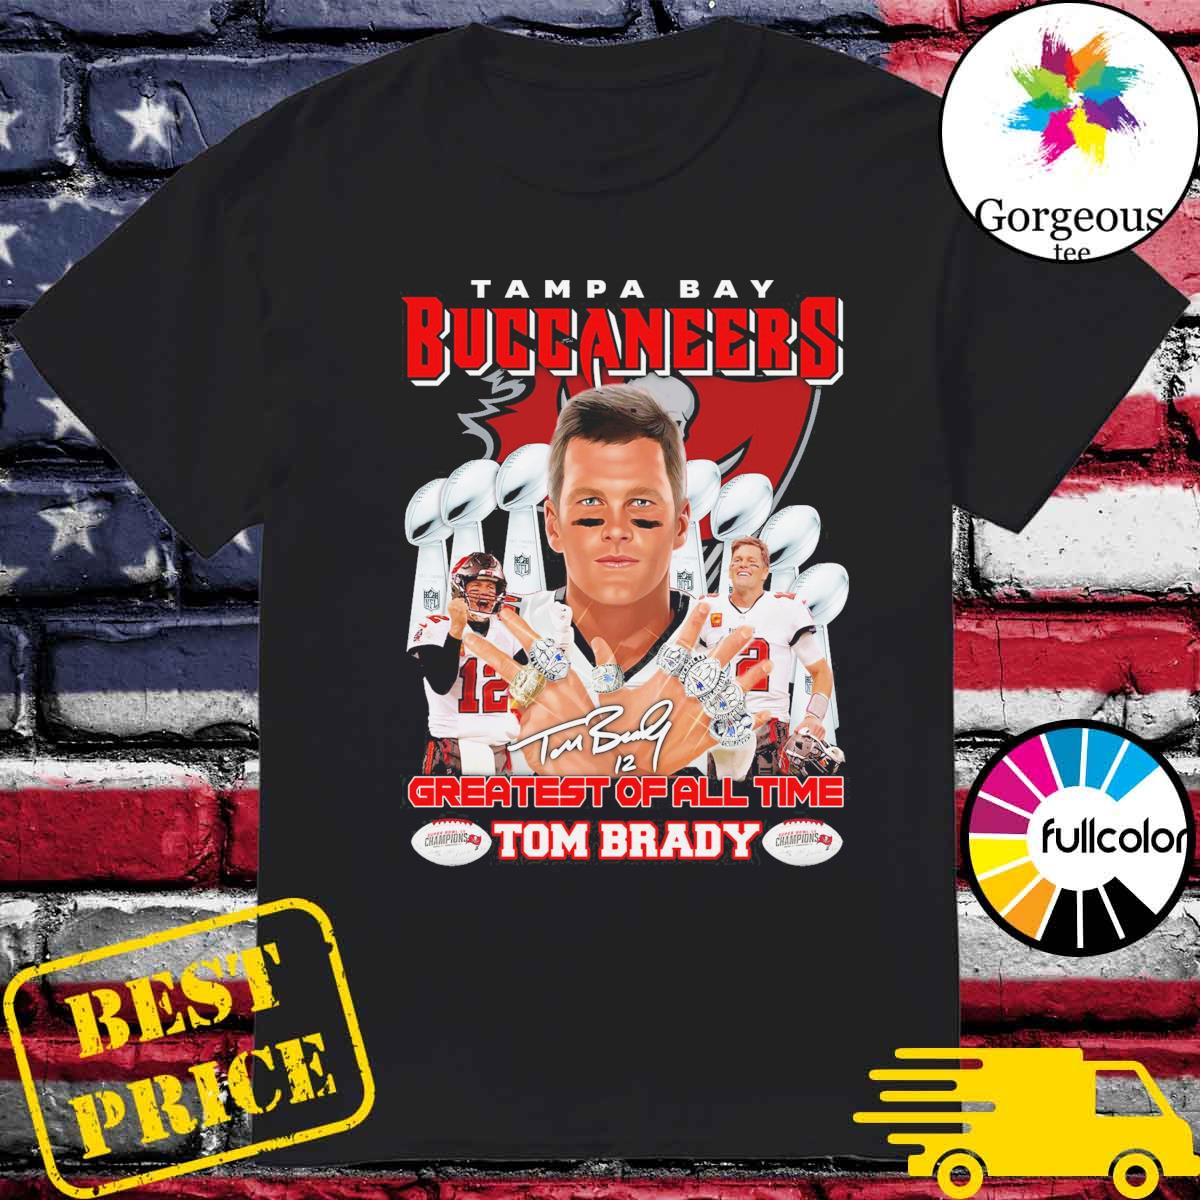 Tampa Bay Buccaneers 12 Tom Brady Greatest of all time shirt